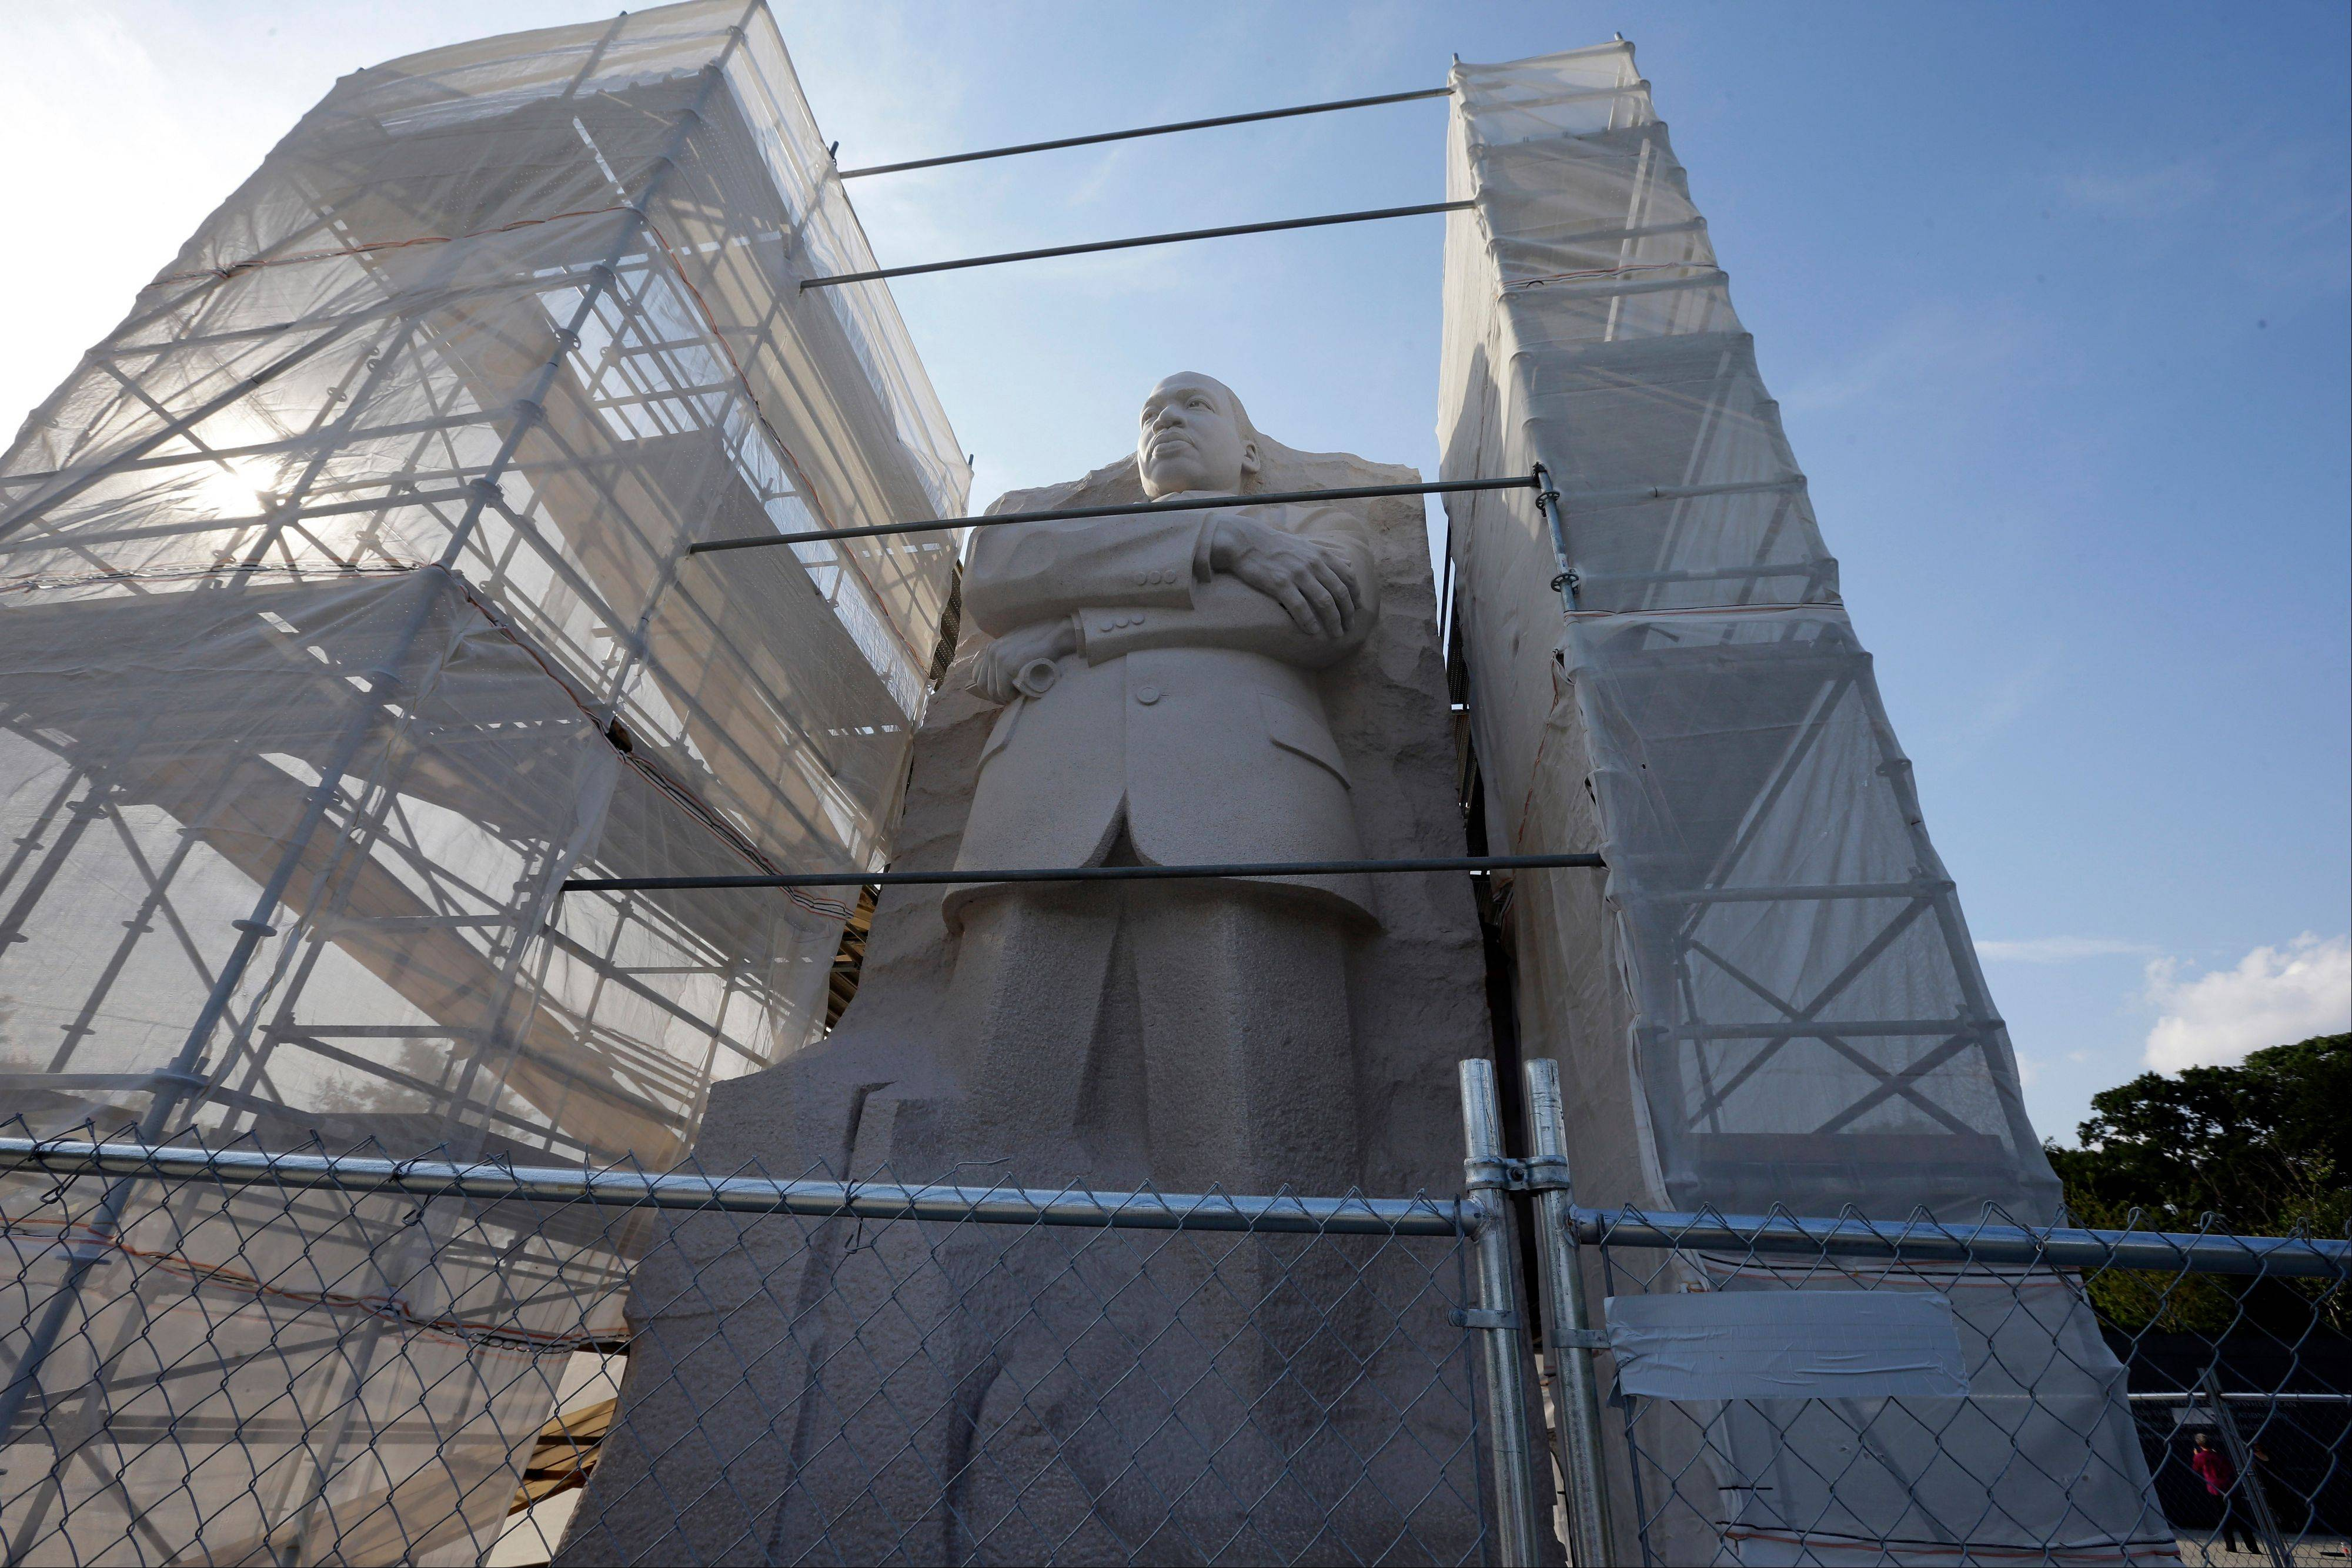 The Martin Luther King, Jr. Memorial has shrouded scaffolding on both sides. A contracting problem has stalled work to refinish part of the Martin Luther King Jr. Memorial where a disputed inscription was recently removed.